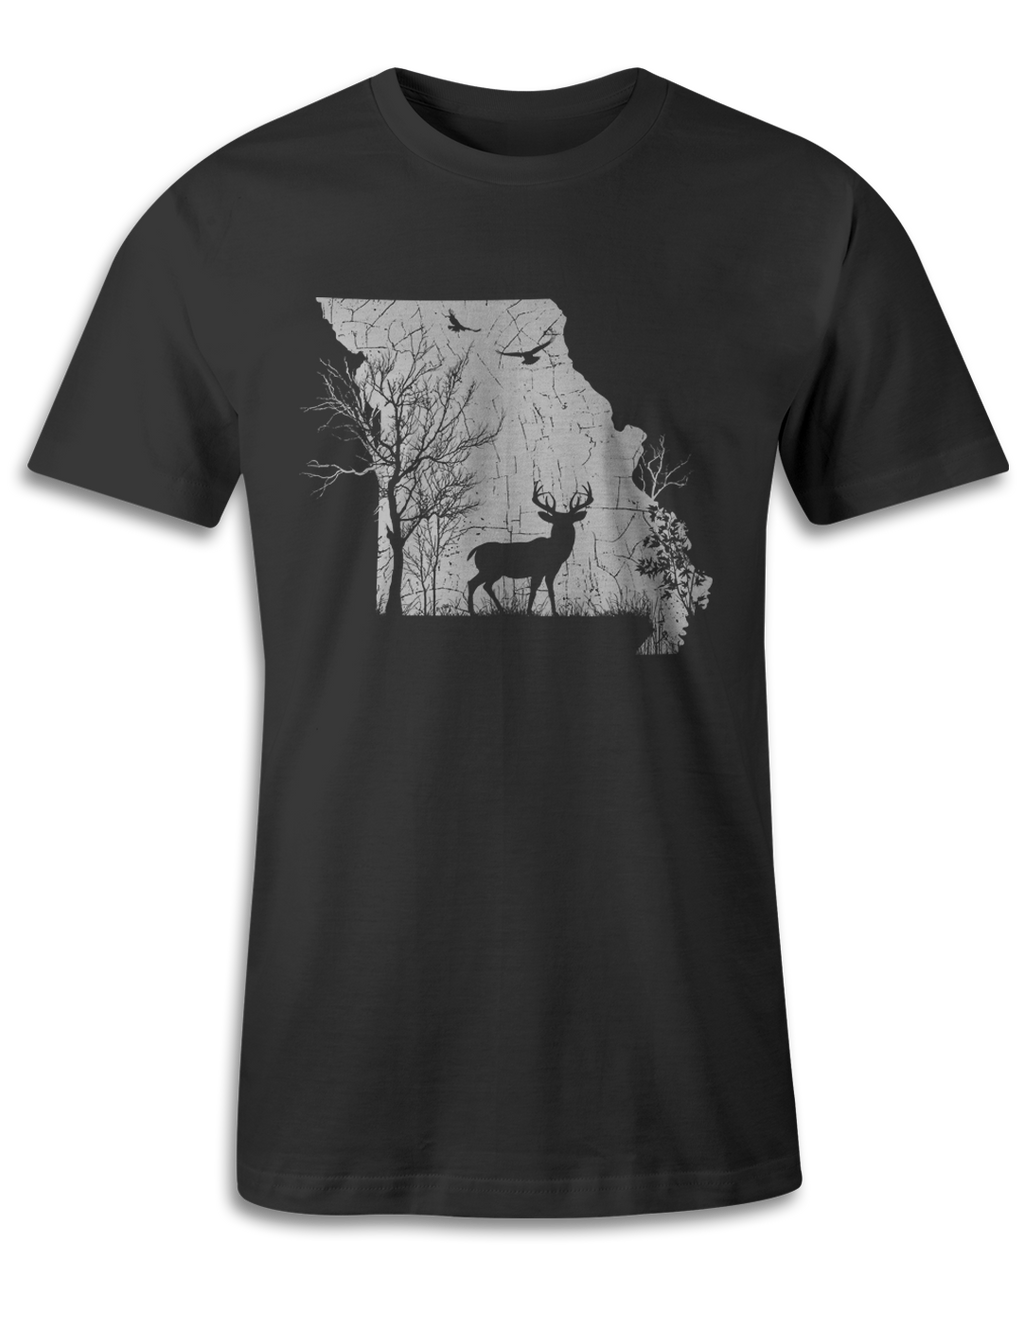 Missouri - Animal In The Woods - Unisex Tee